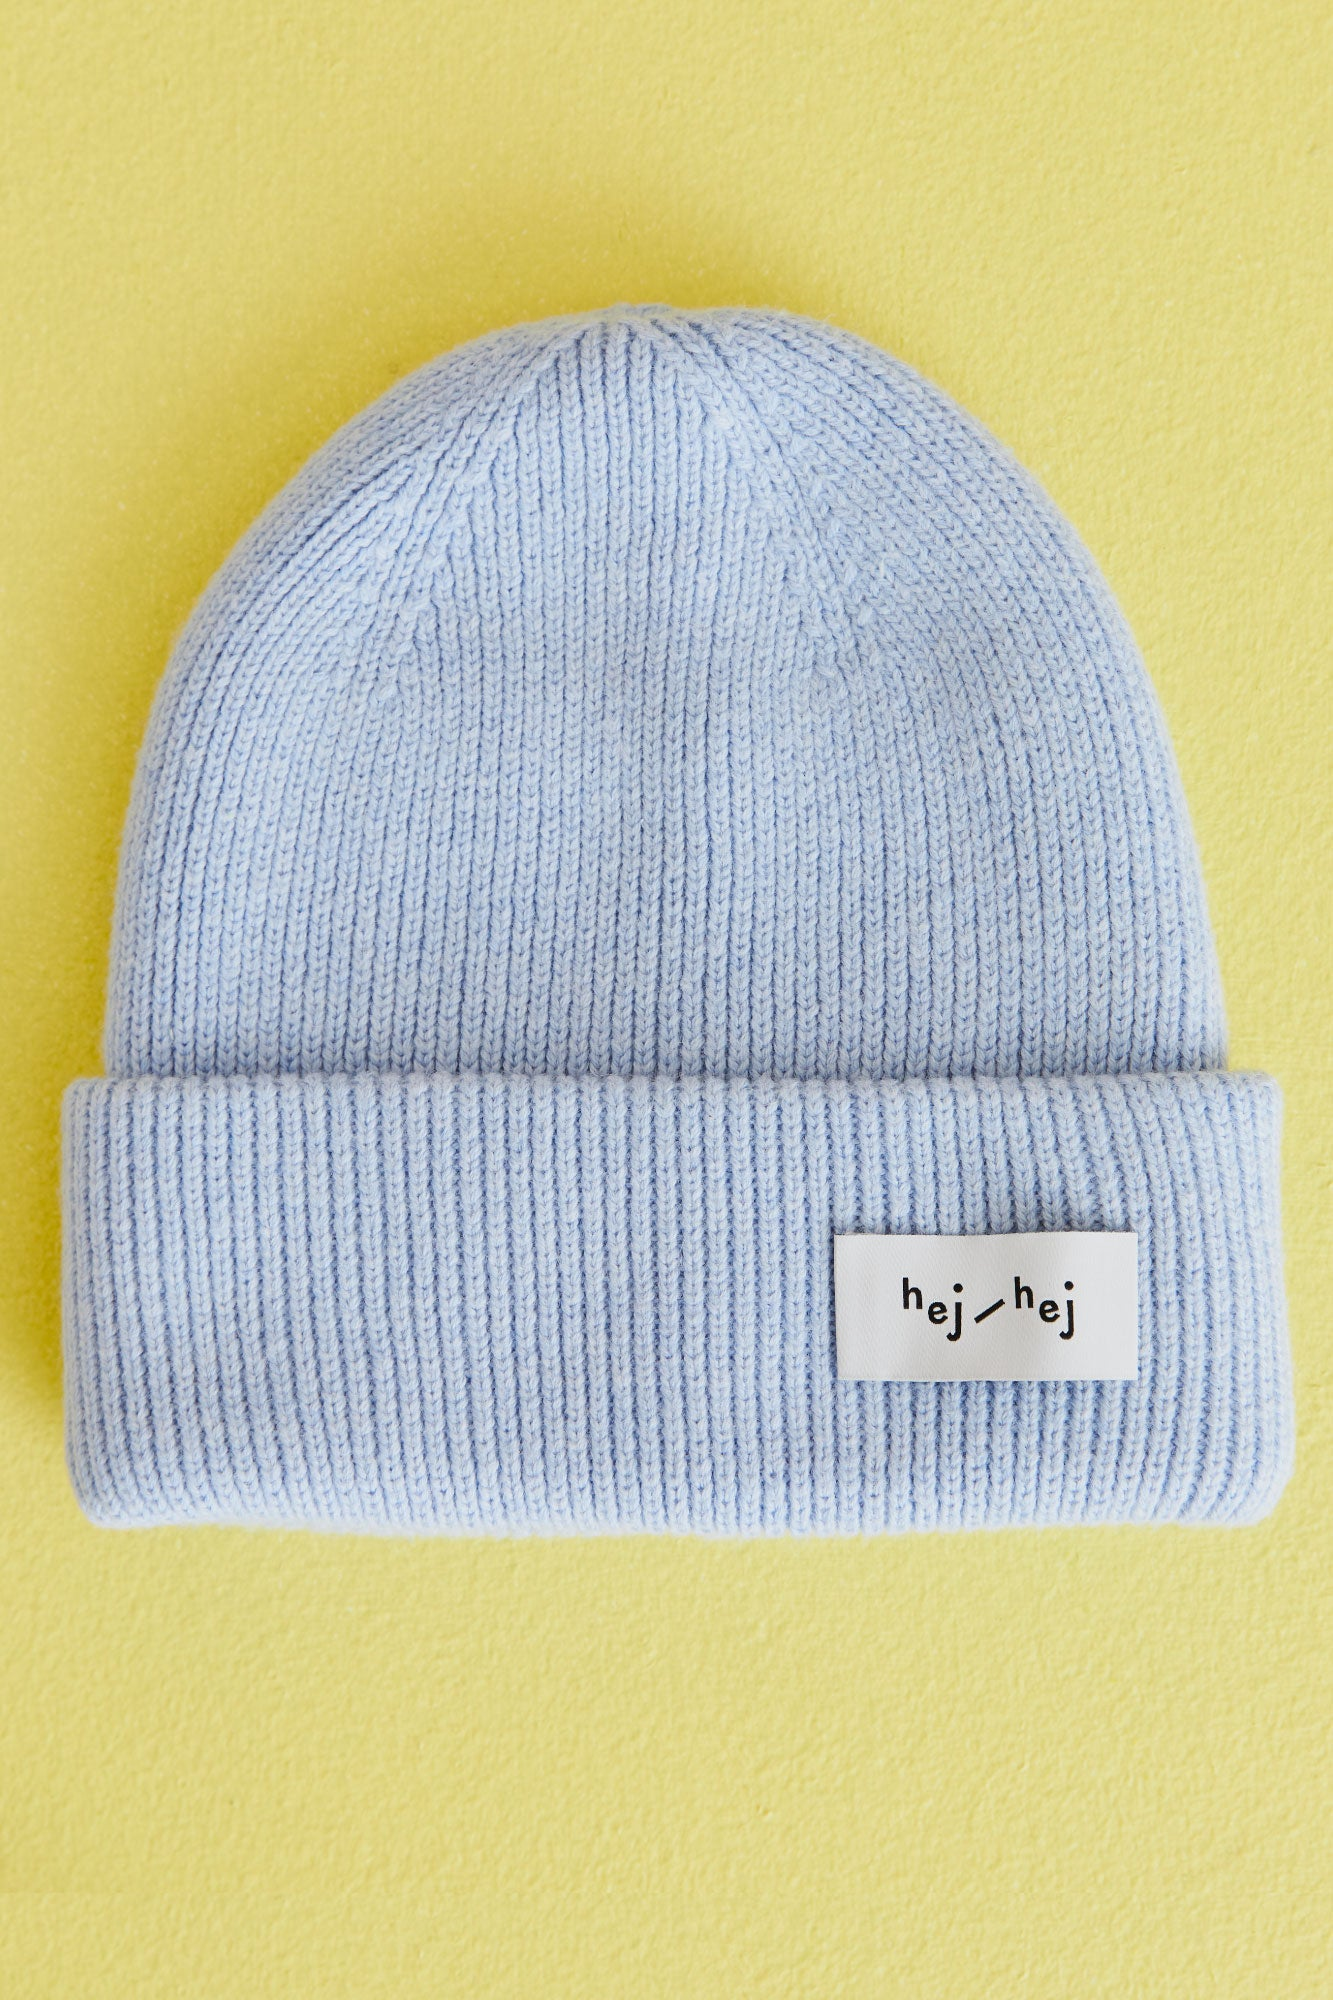 Heads Up Hat in Sky Blue - hej hej